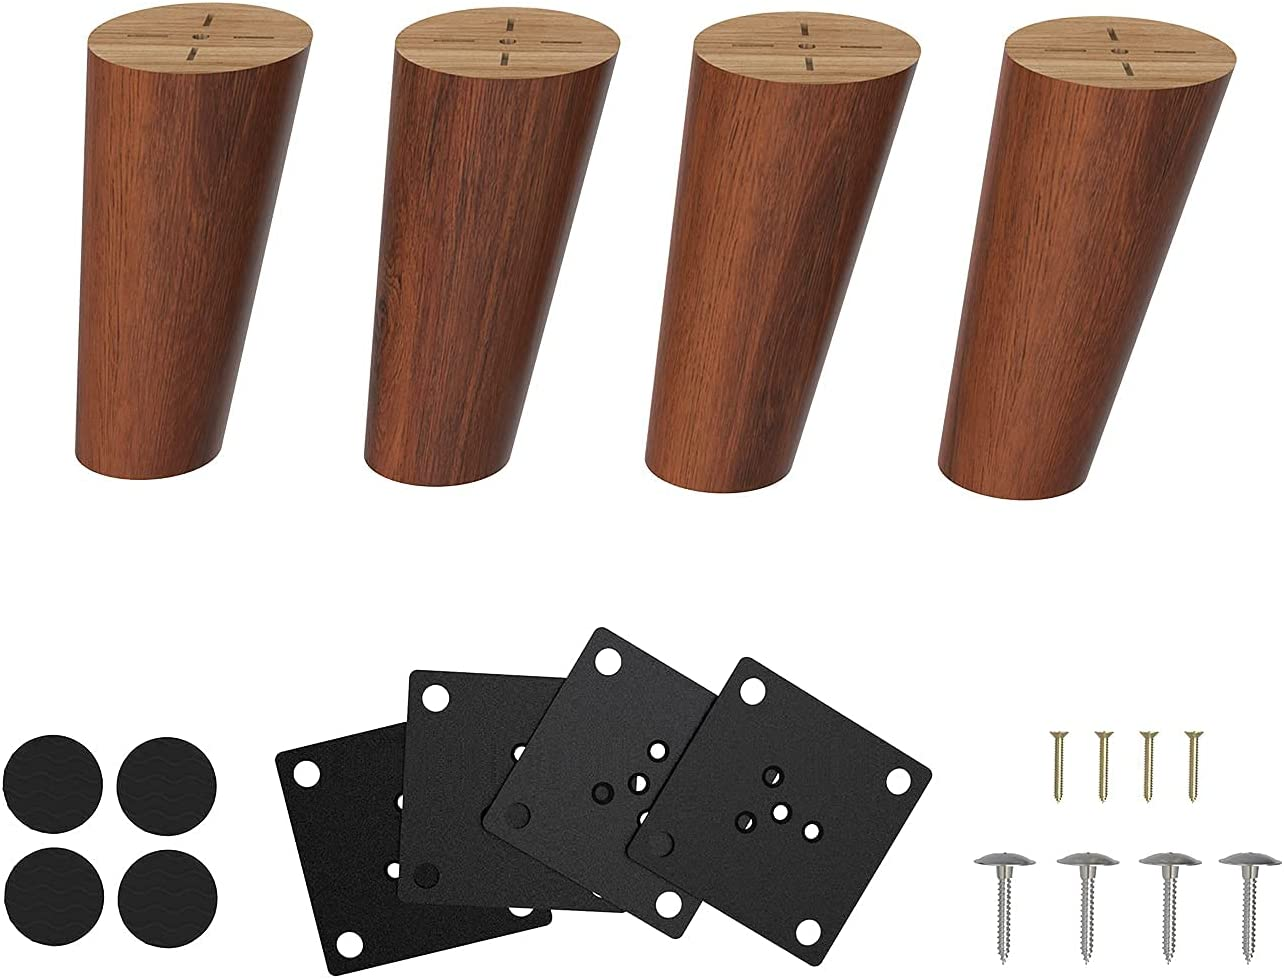 Orgerphy 4 Inch Solid Wood Furniture Legs 4pcs   Round Tapered Oblique Replacement Legs for Furniture  Mid Century Modern Wooden Legs Desk Legs Furniture Legs for DIYers   Screws & Pads ( Wine- Red)